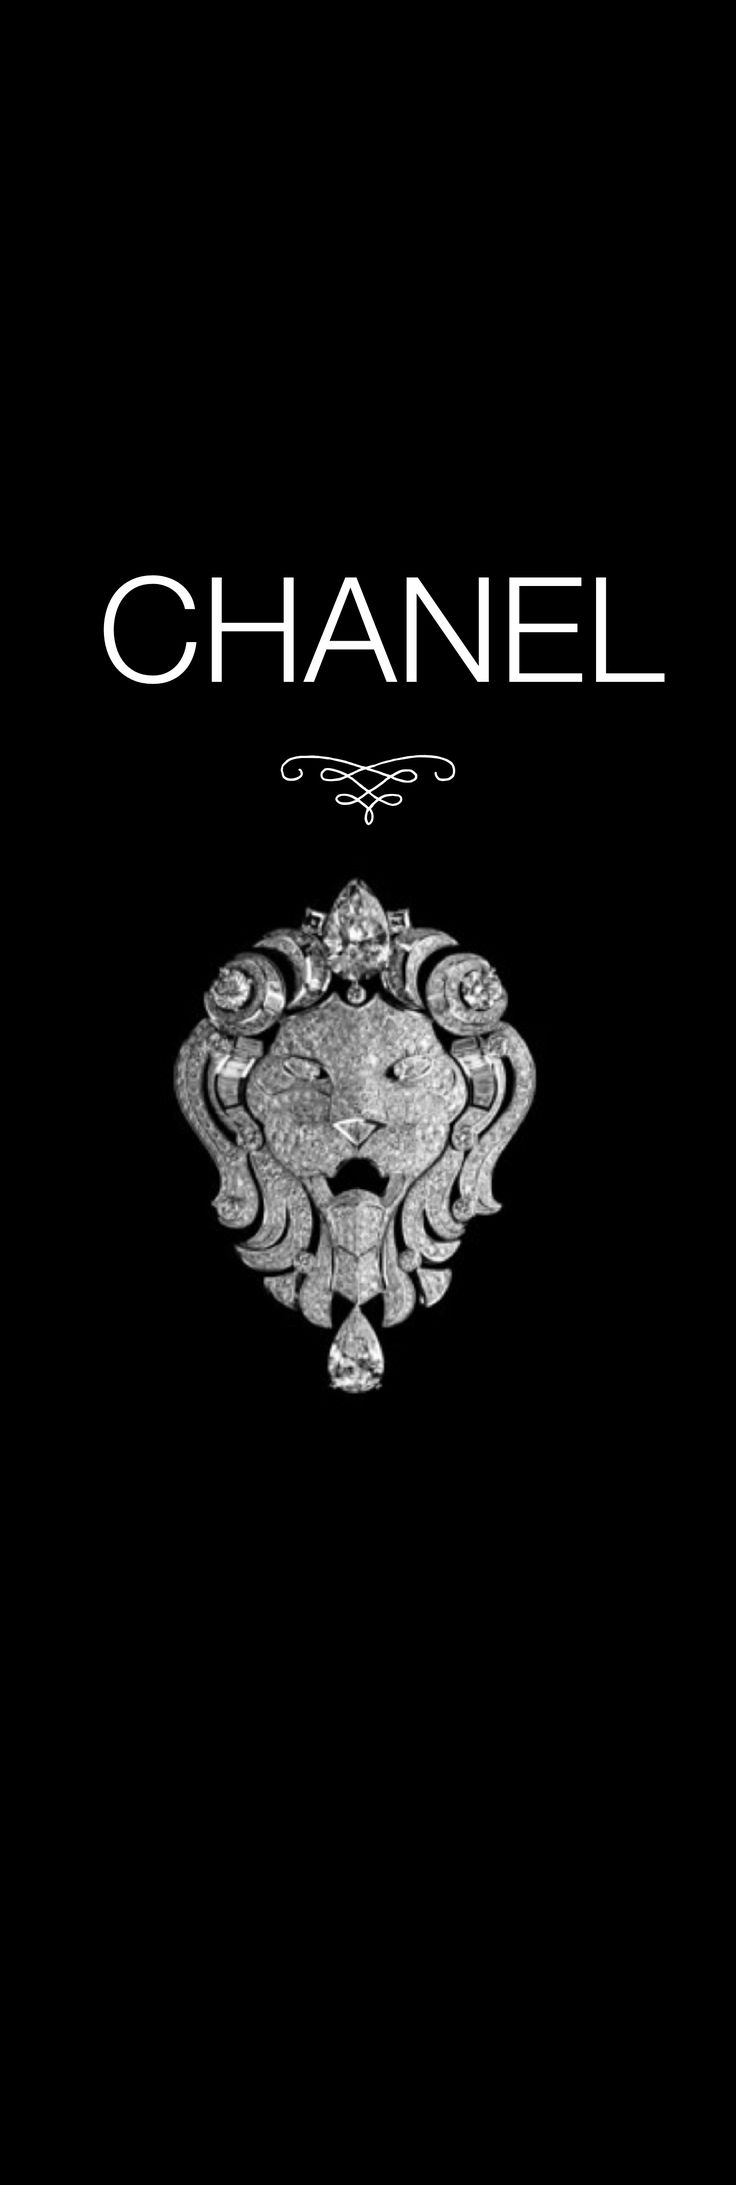 Luxury Jewelry -The Chanel Lion | Luxurydotcom 2014 collage made by Luxurydotcom